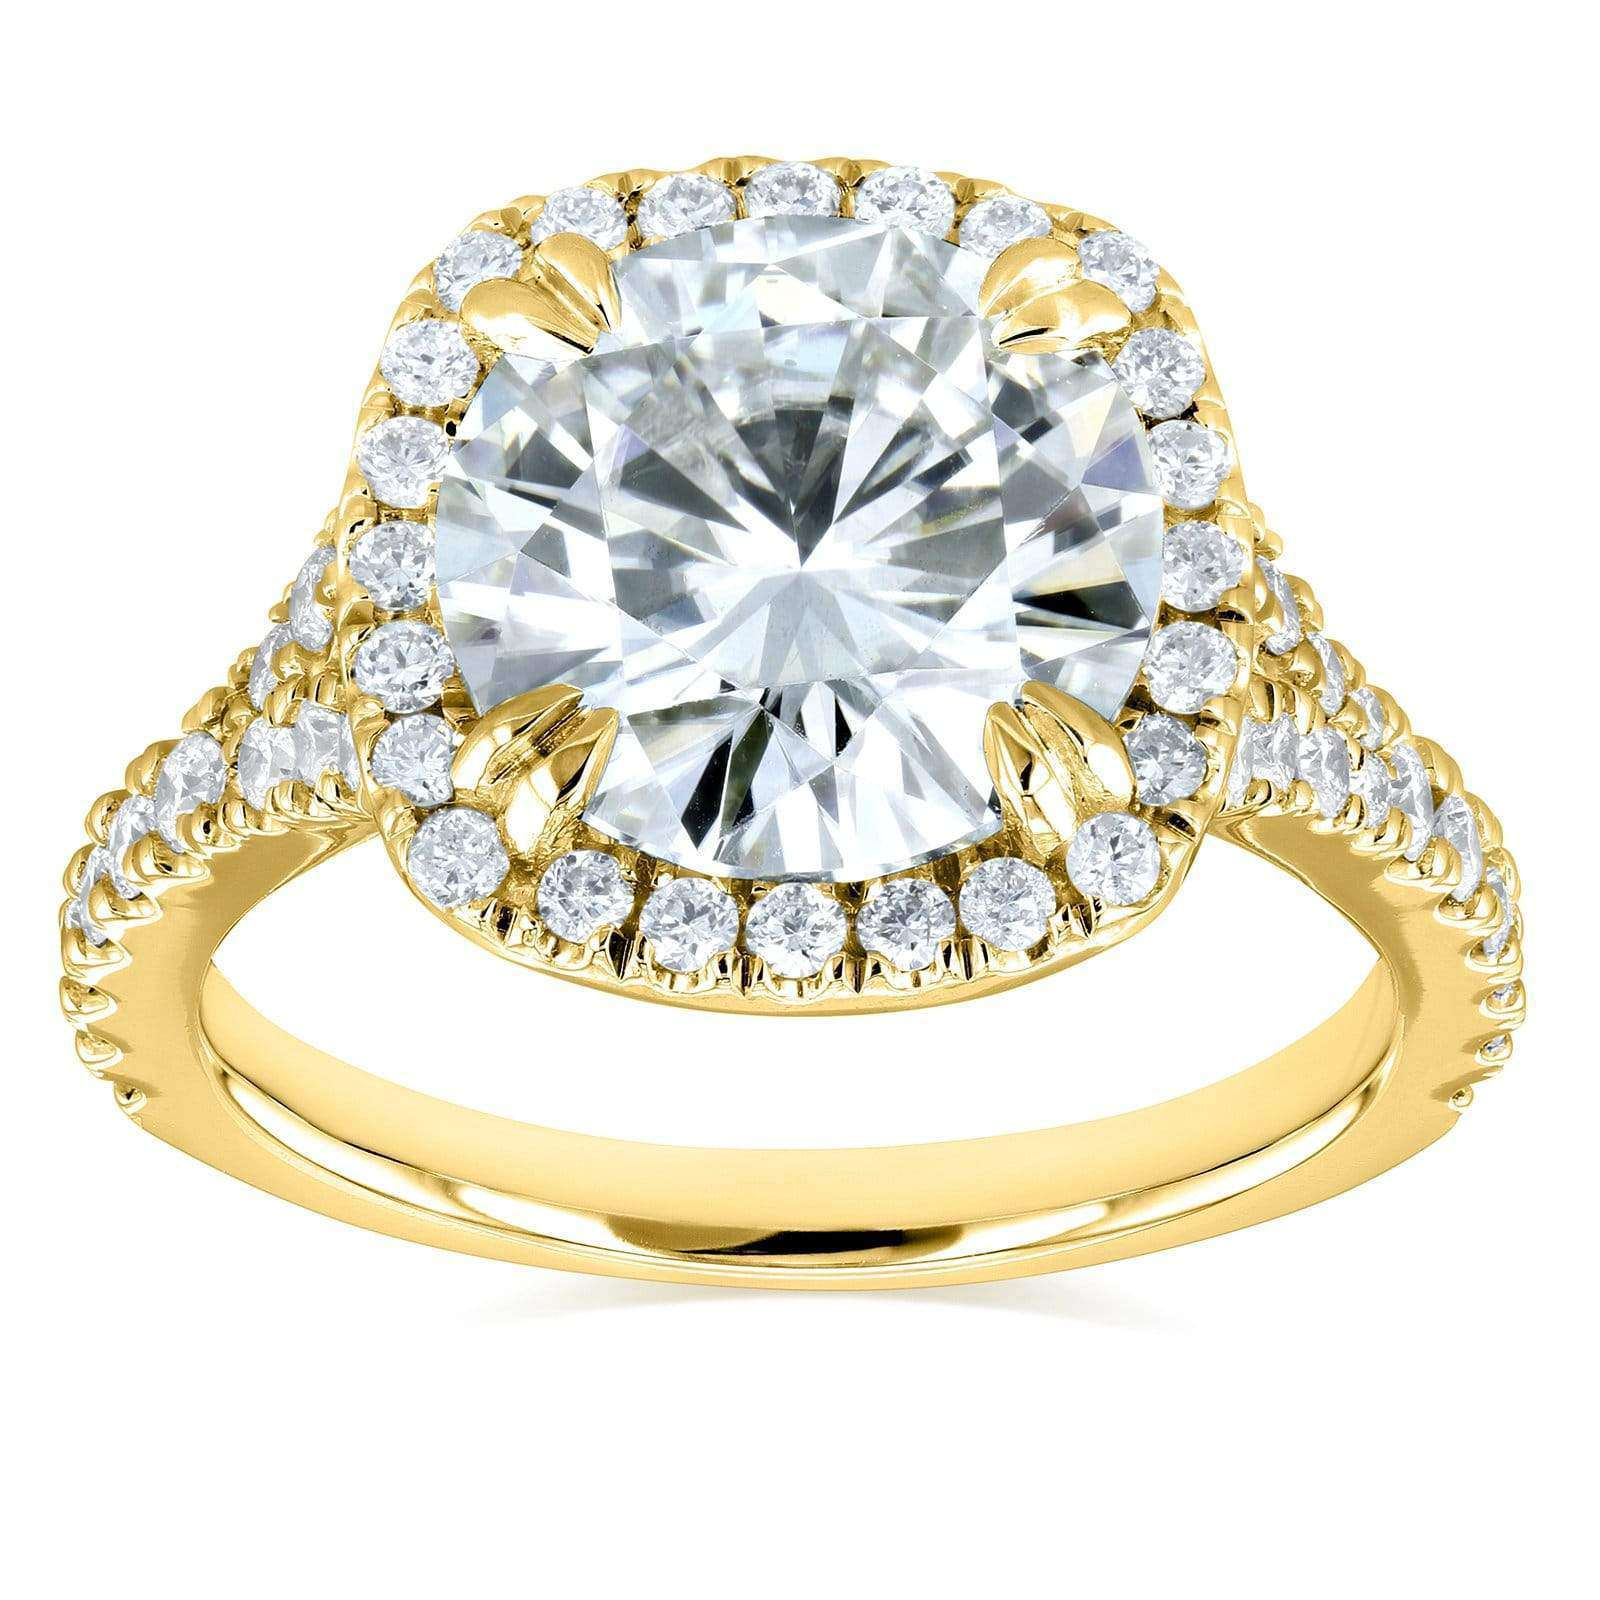 Coupons Round H-I Moissanite and Diamond Halo Engagement Ring 3 5/8 CTW 14k Yellow Gold - 9